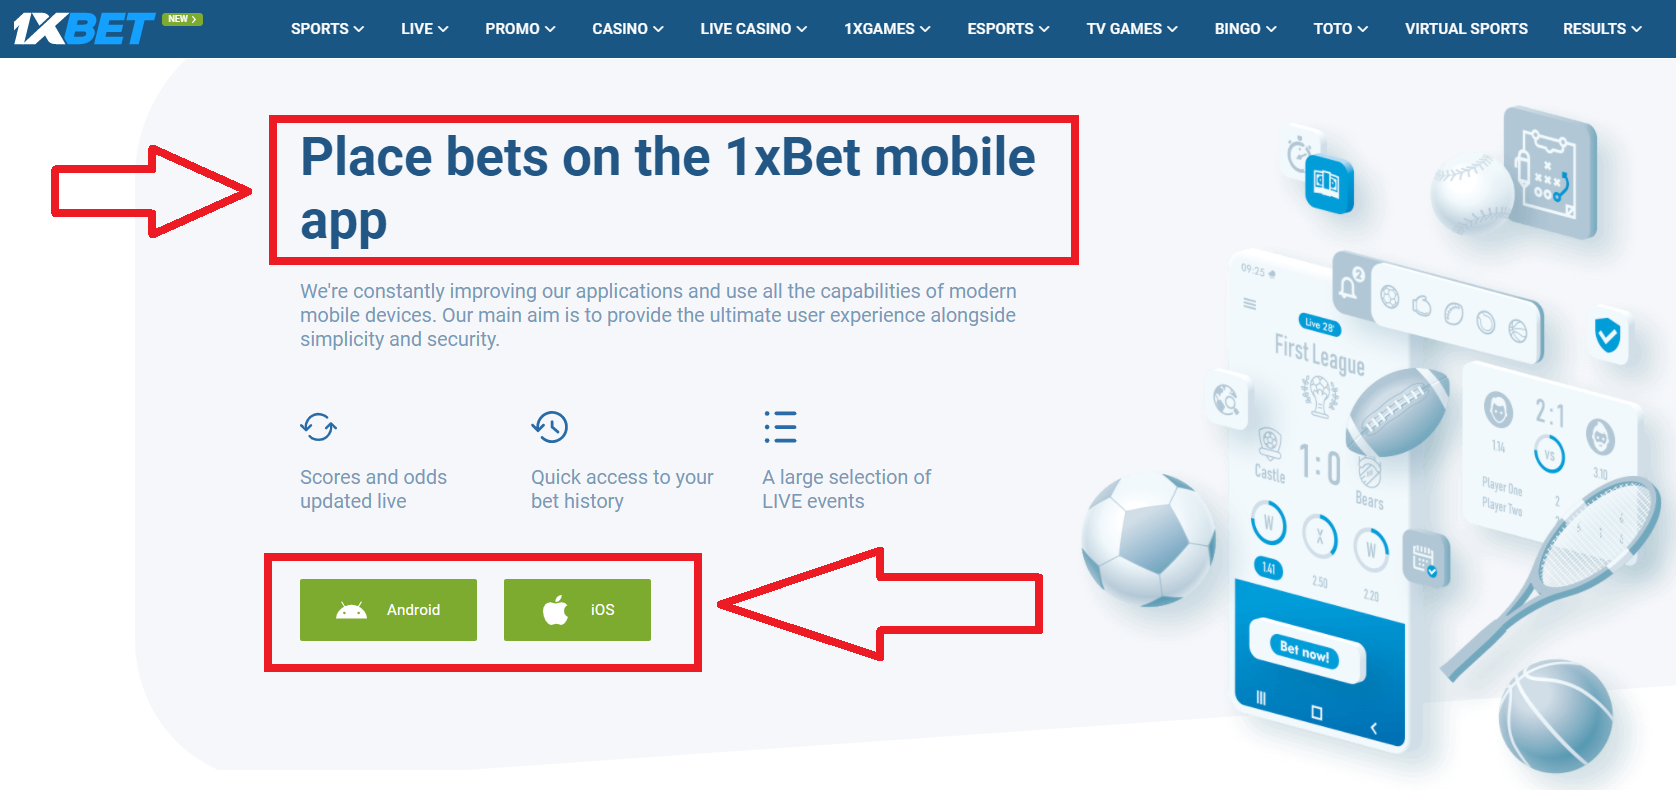 What is 1xBet apk?